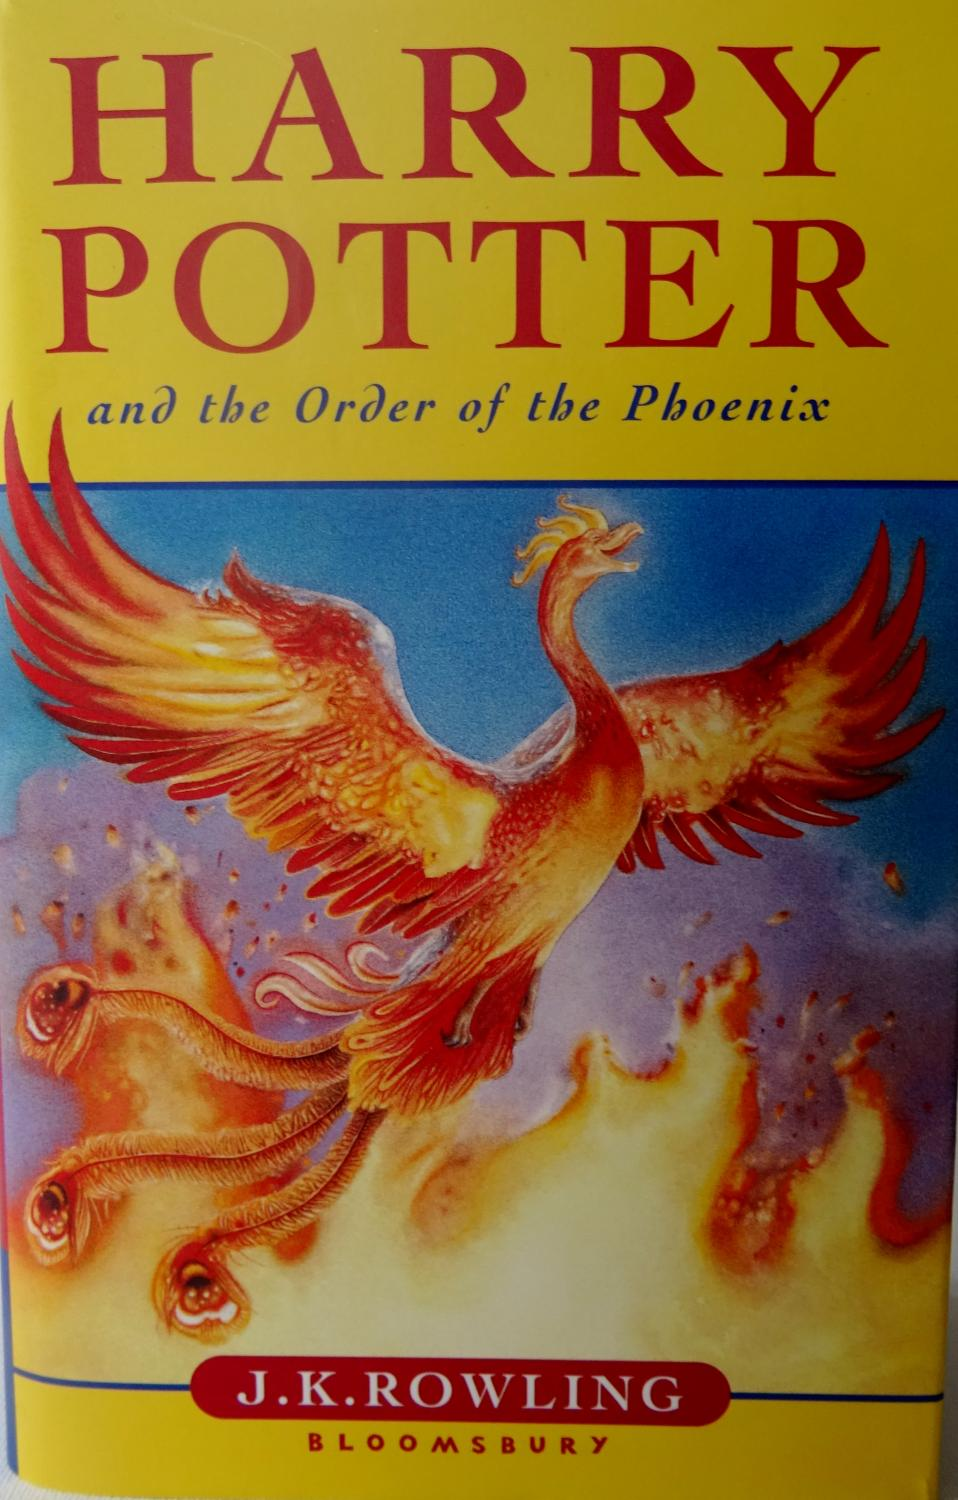 Harry Potter Book By Order : Harry potter and the order of phoenix by rowling j k